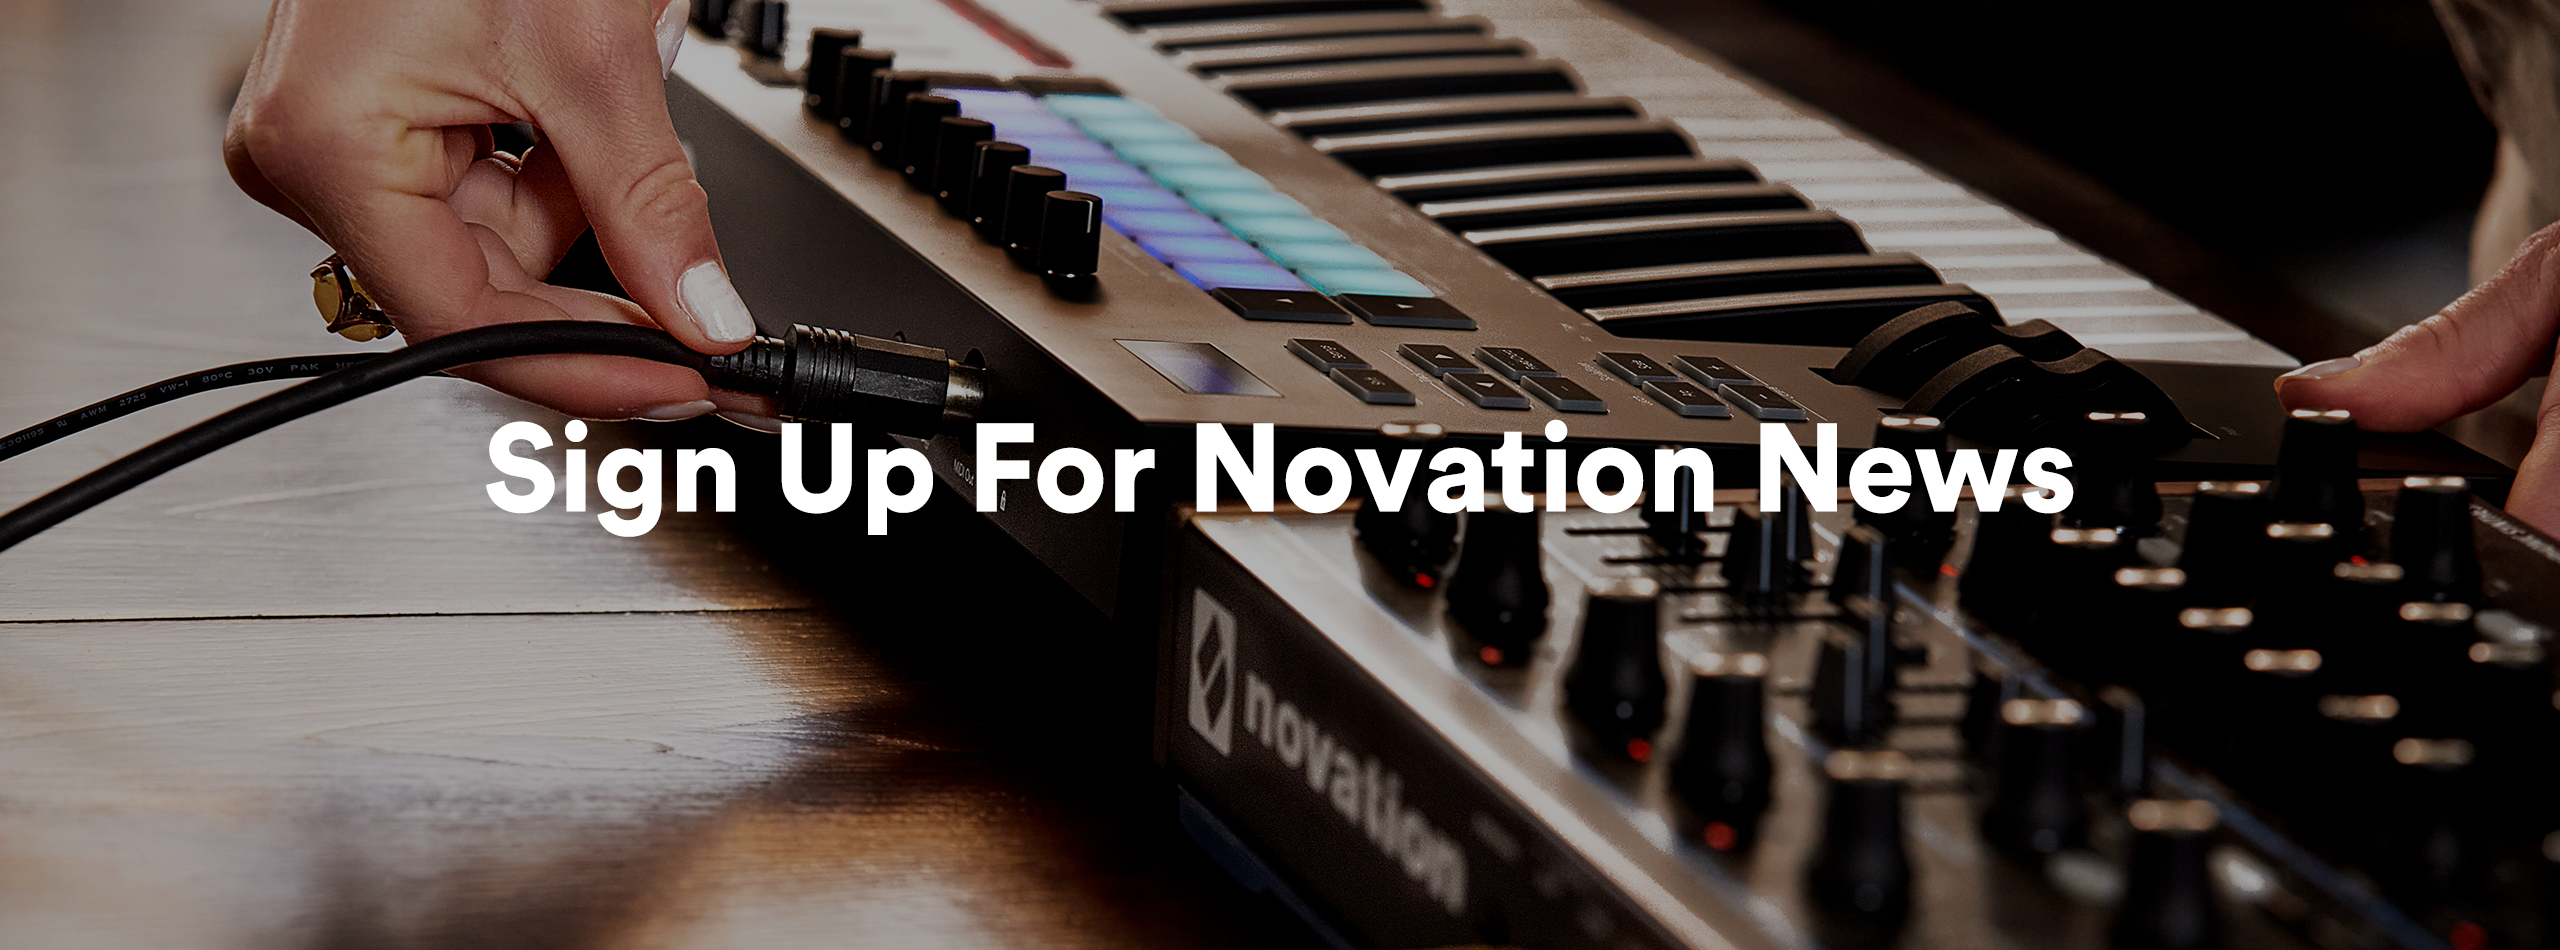 Sign Up For Novation News